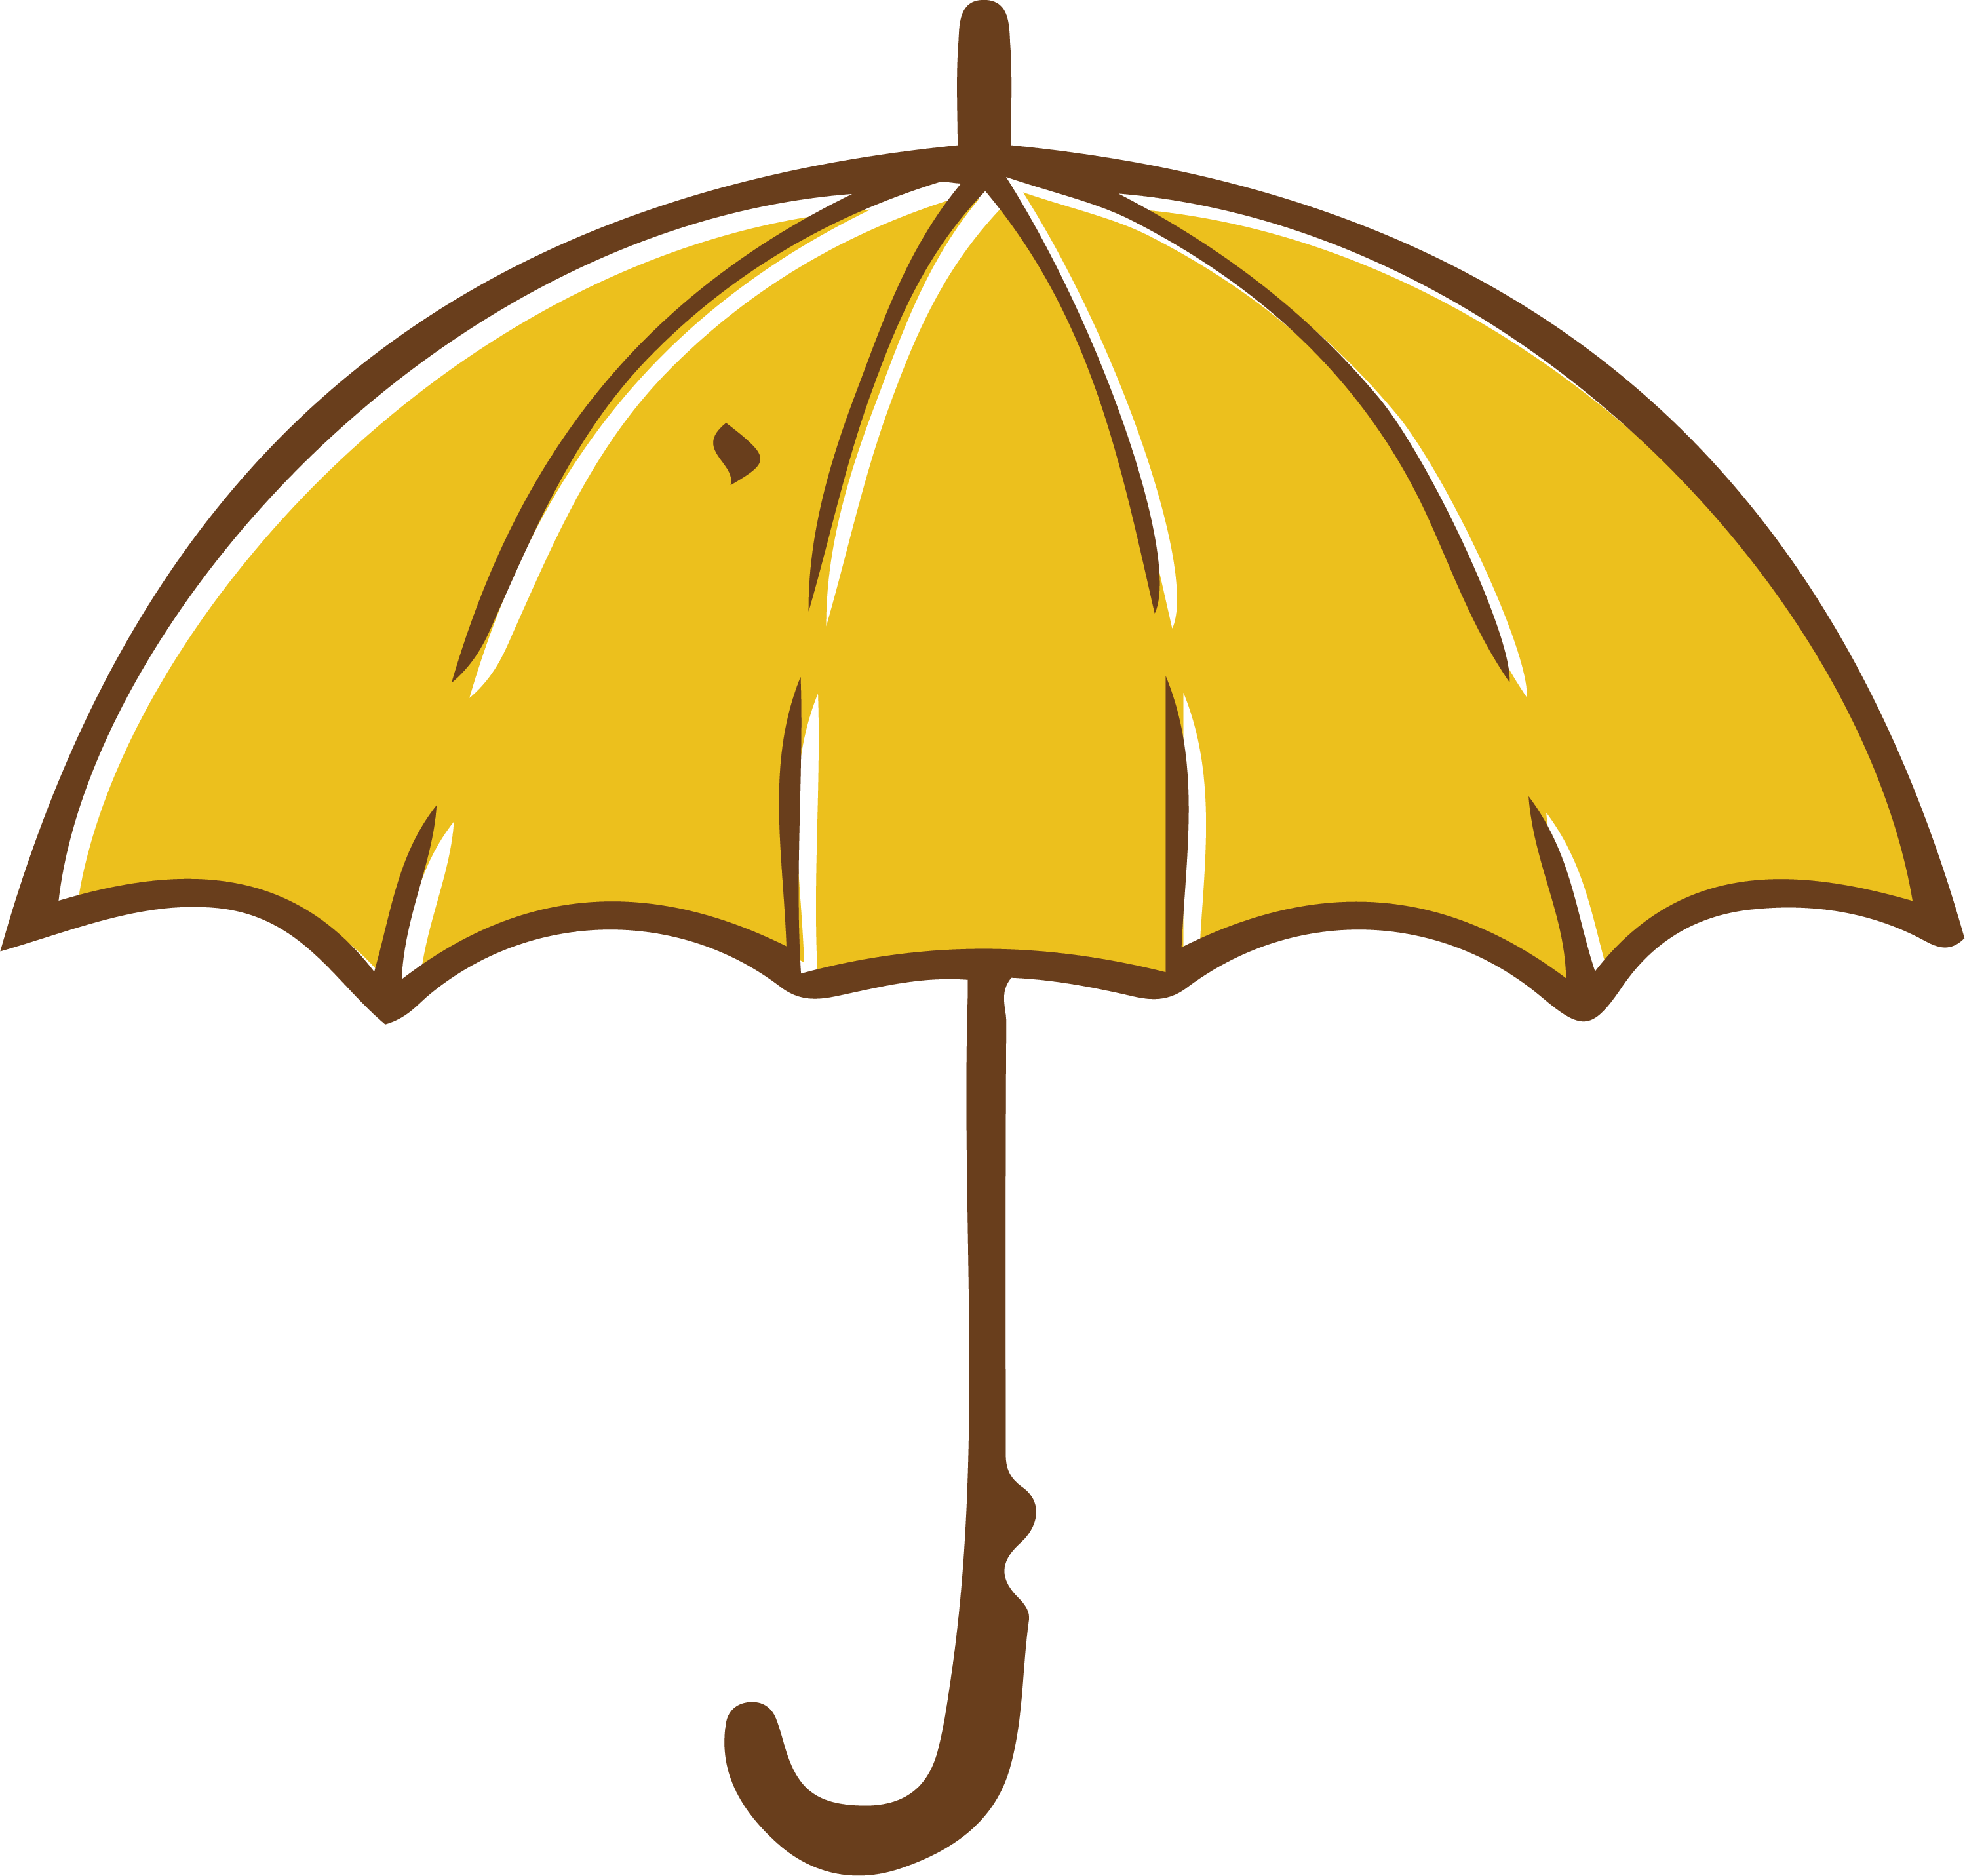 umbrella clipart with transparent background 10 free ...